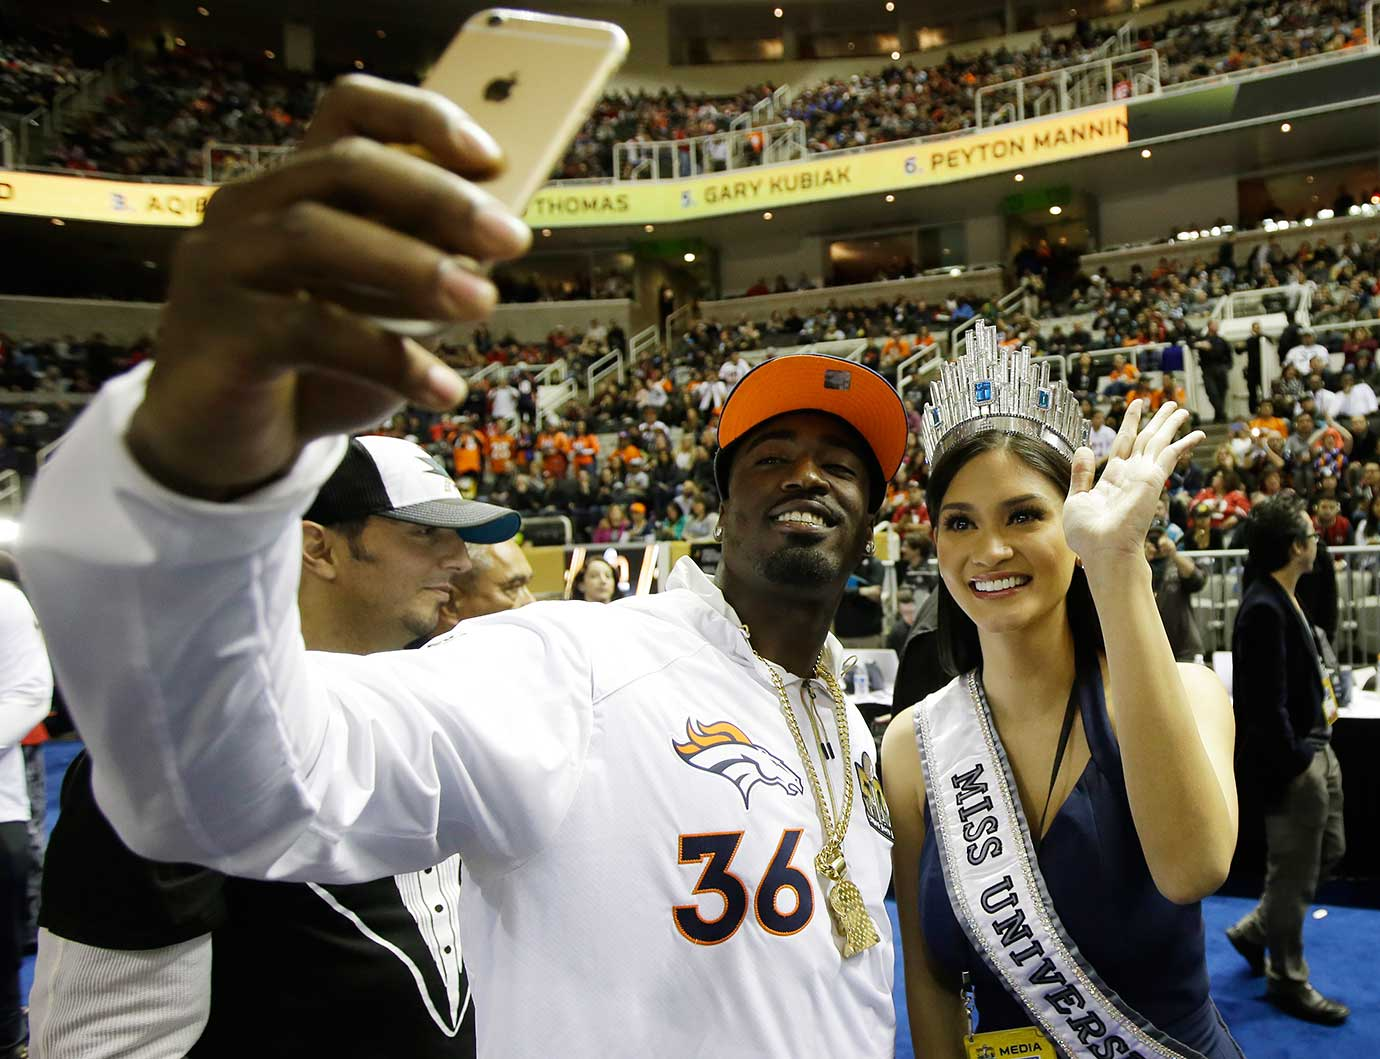 Miss Universe Pia Alonzo Wurtzbach poses with Denver Broncos cornerback Kayvon Webster during Opening Night for Super Bowl 50 in San Jose, Calif.